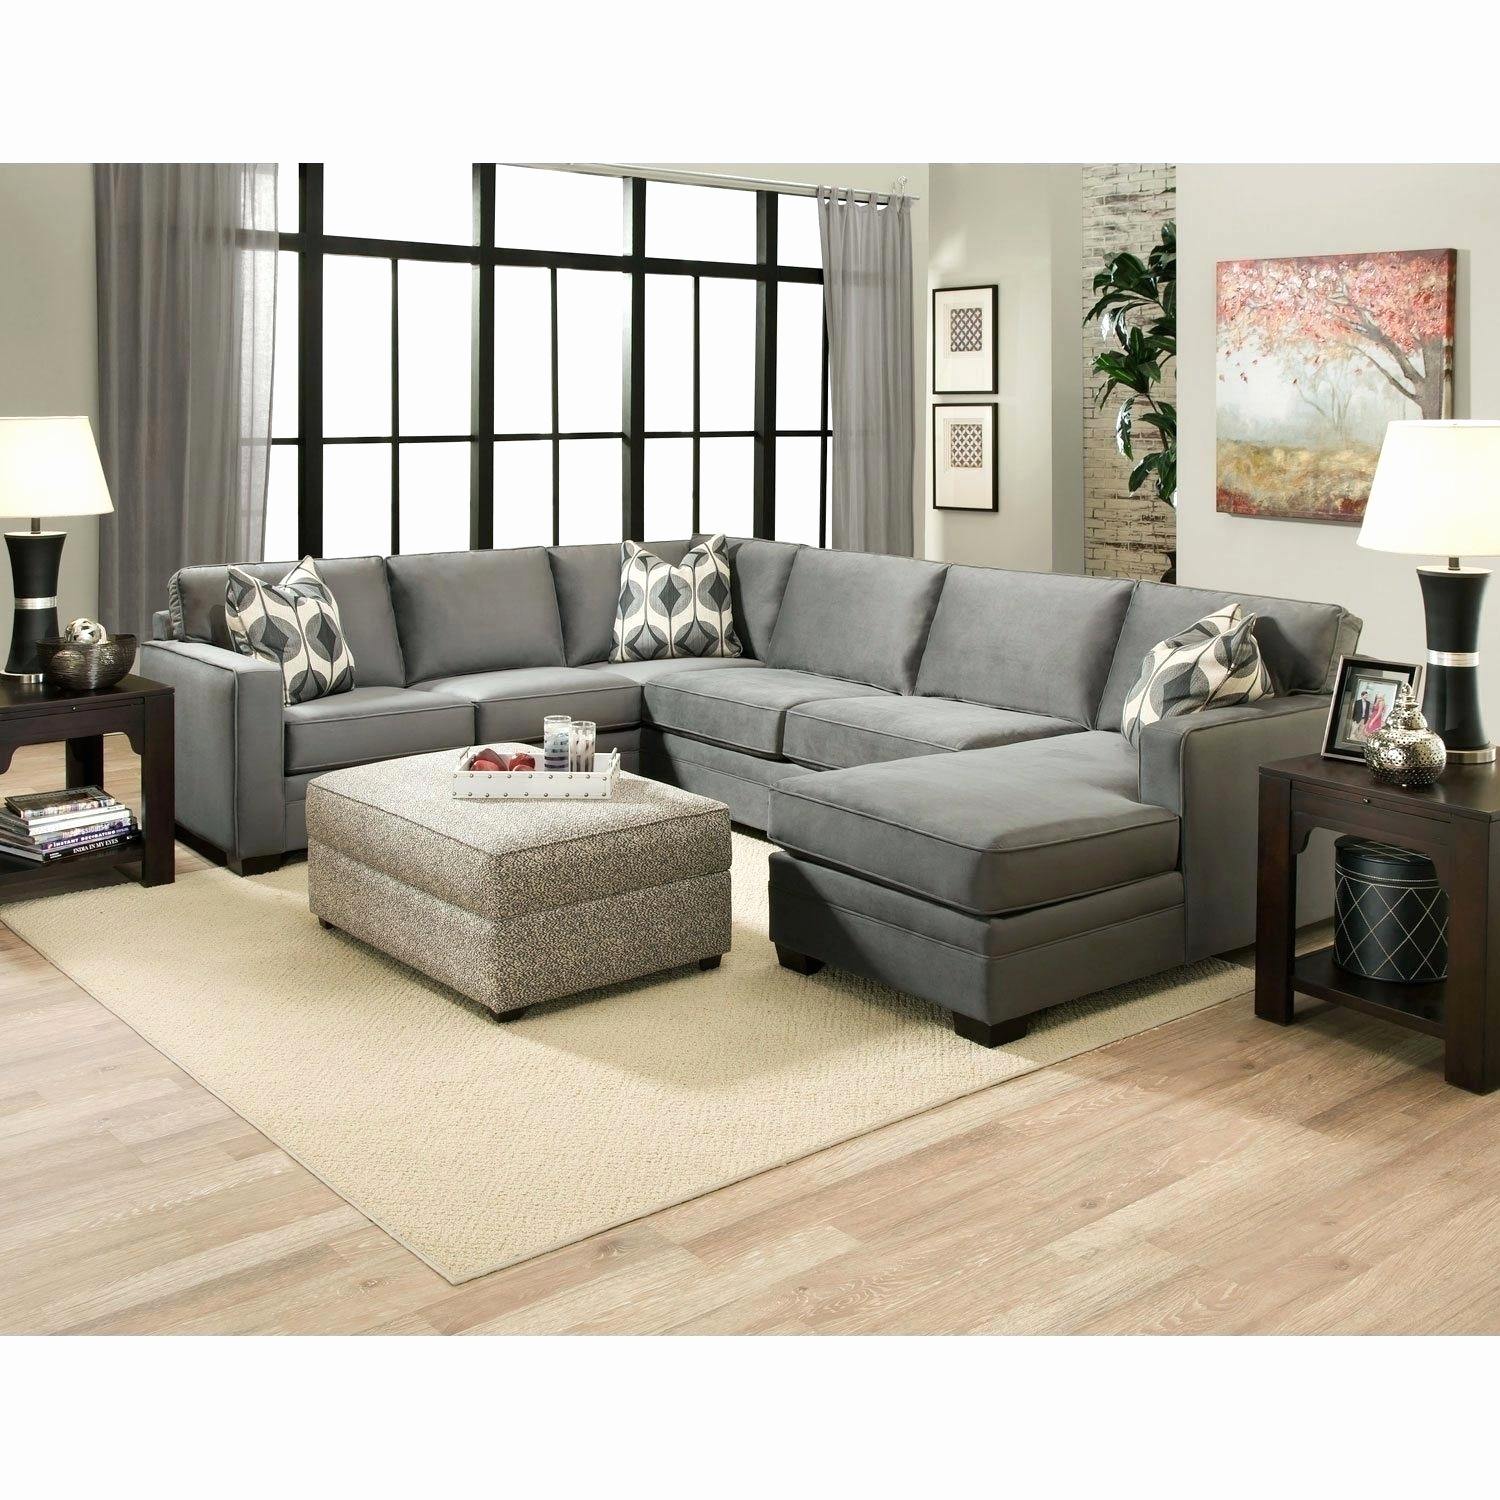 Awesome Sectional Sofa Montreal 2018 – Couches Ideas for Kijiji Montreal Sectional Sofas (Image 1 of 10)